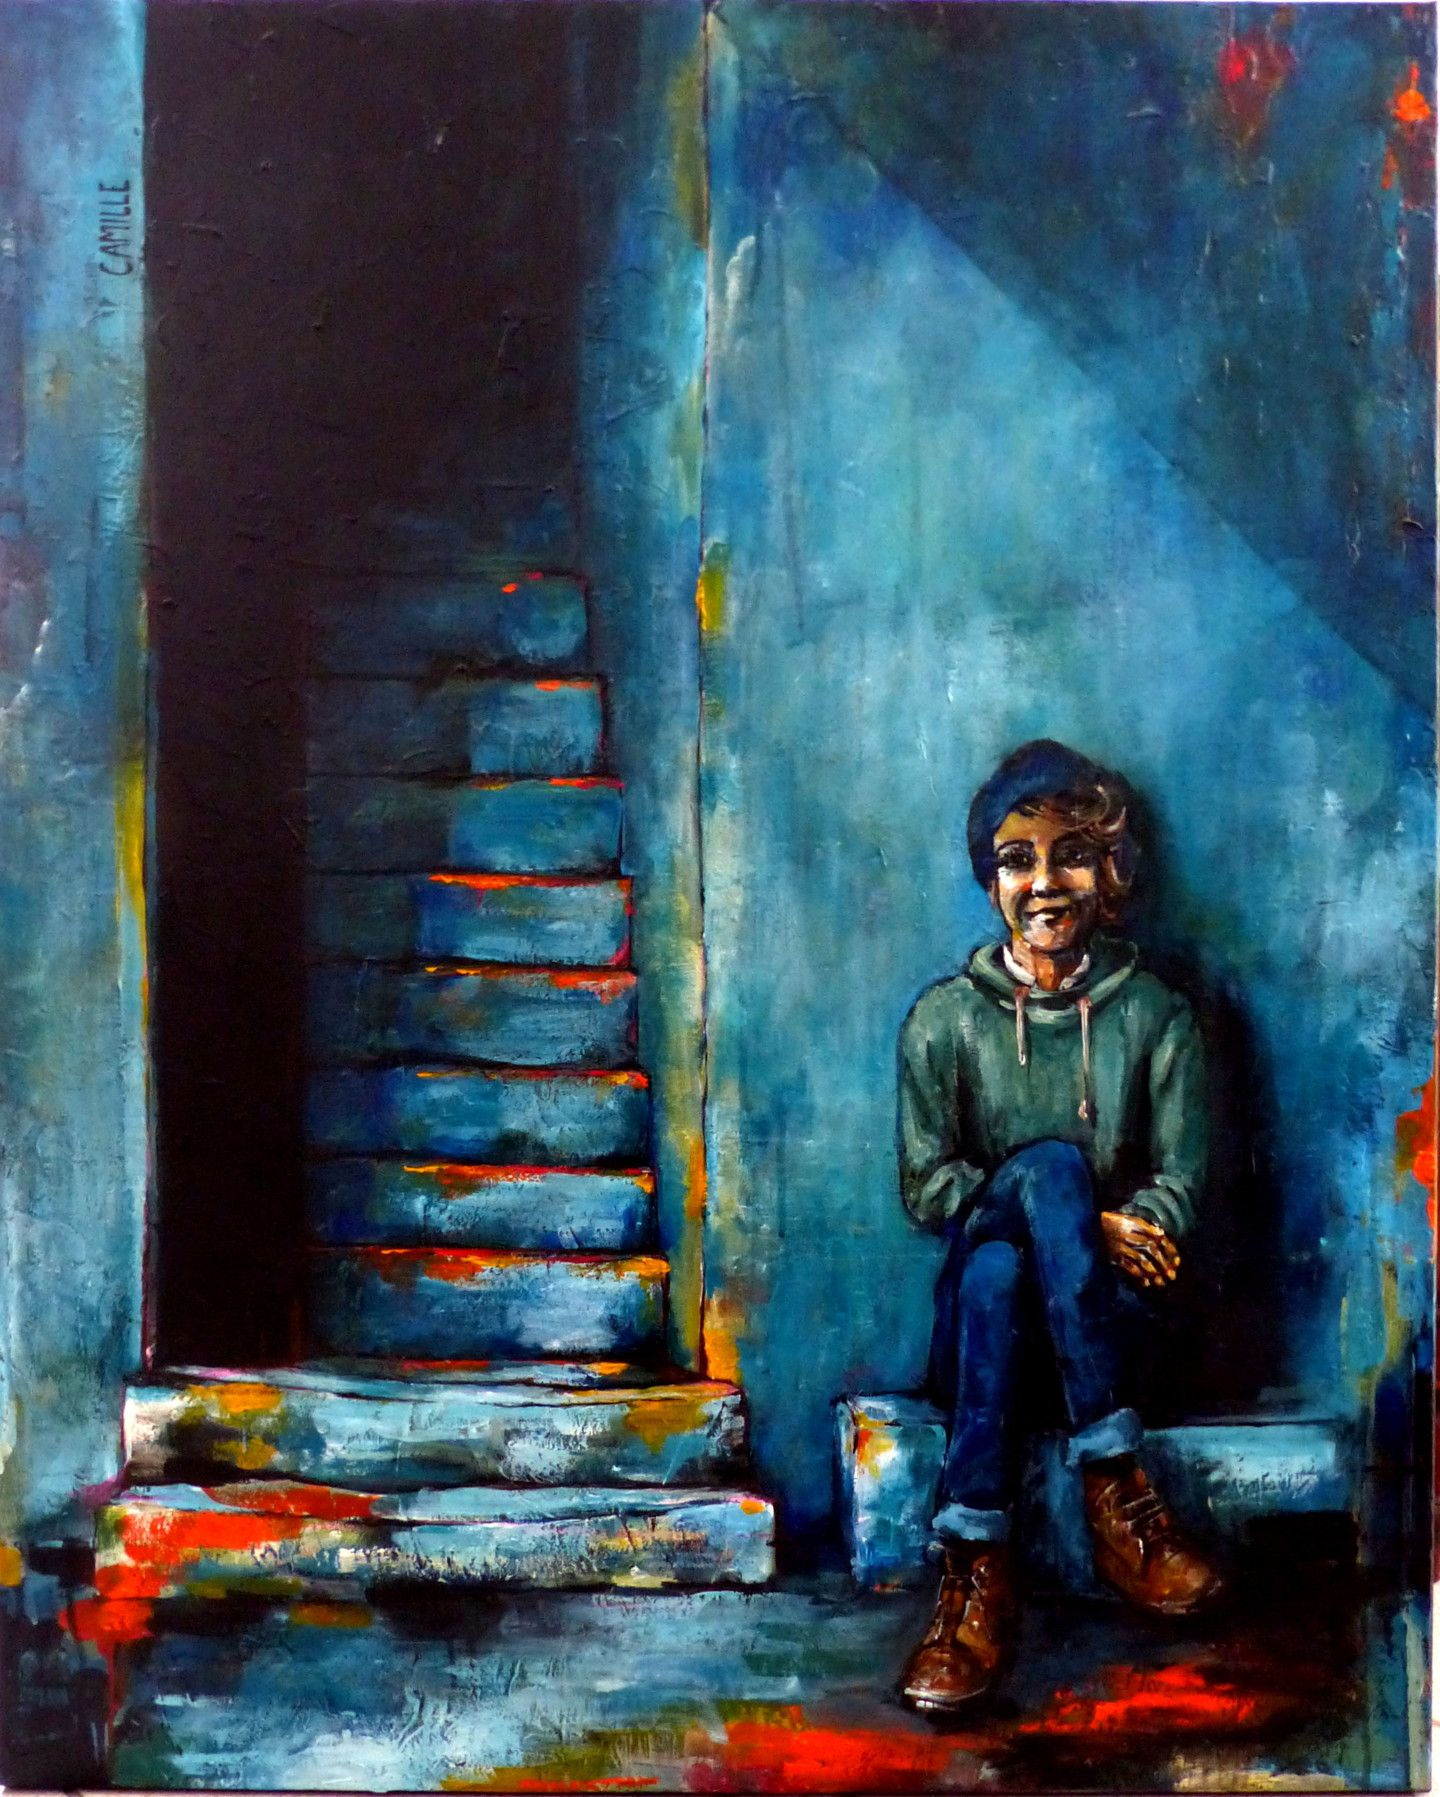 $565.23 · Painting, Acrylic  by Camille Guérin (France). Buy the original (100x80x2 cm) $565.23, including shipping (France) via #Artmajeur.  #Painting #Acrylic #Figurative #Women #RuralLife #Portraits #Femme #Assis #Marches #Escalier #Rue #Sérenité #Paix #Bleu #Village